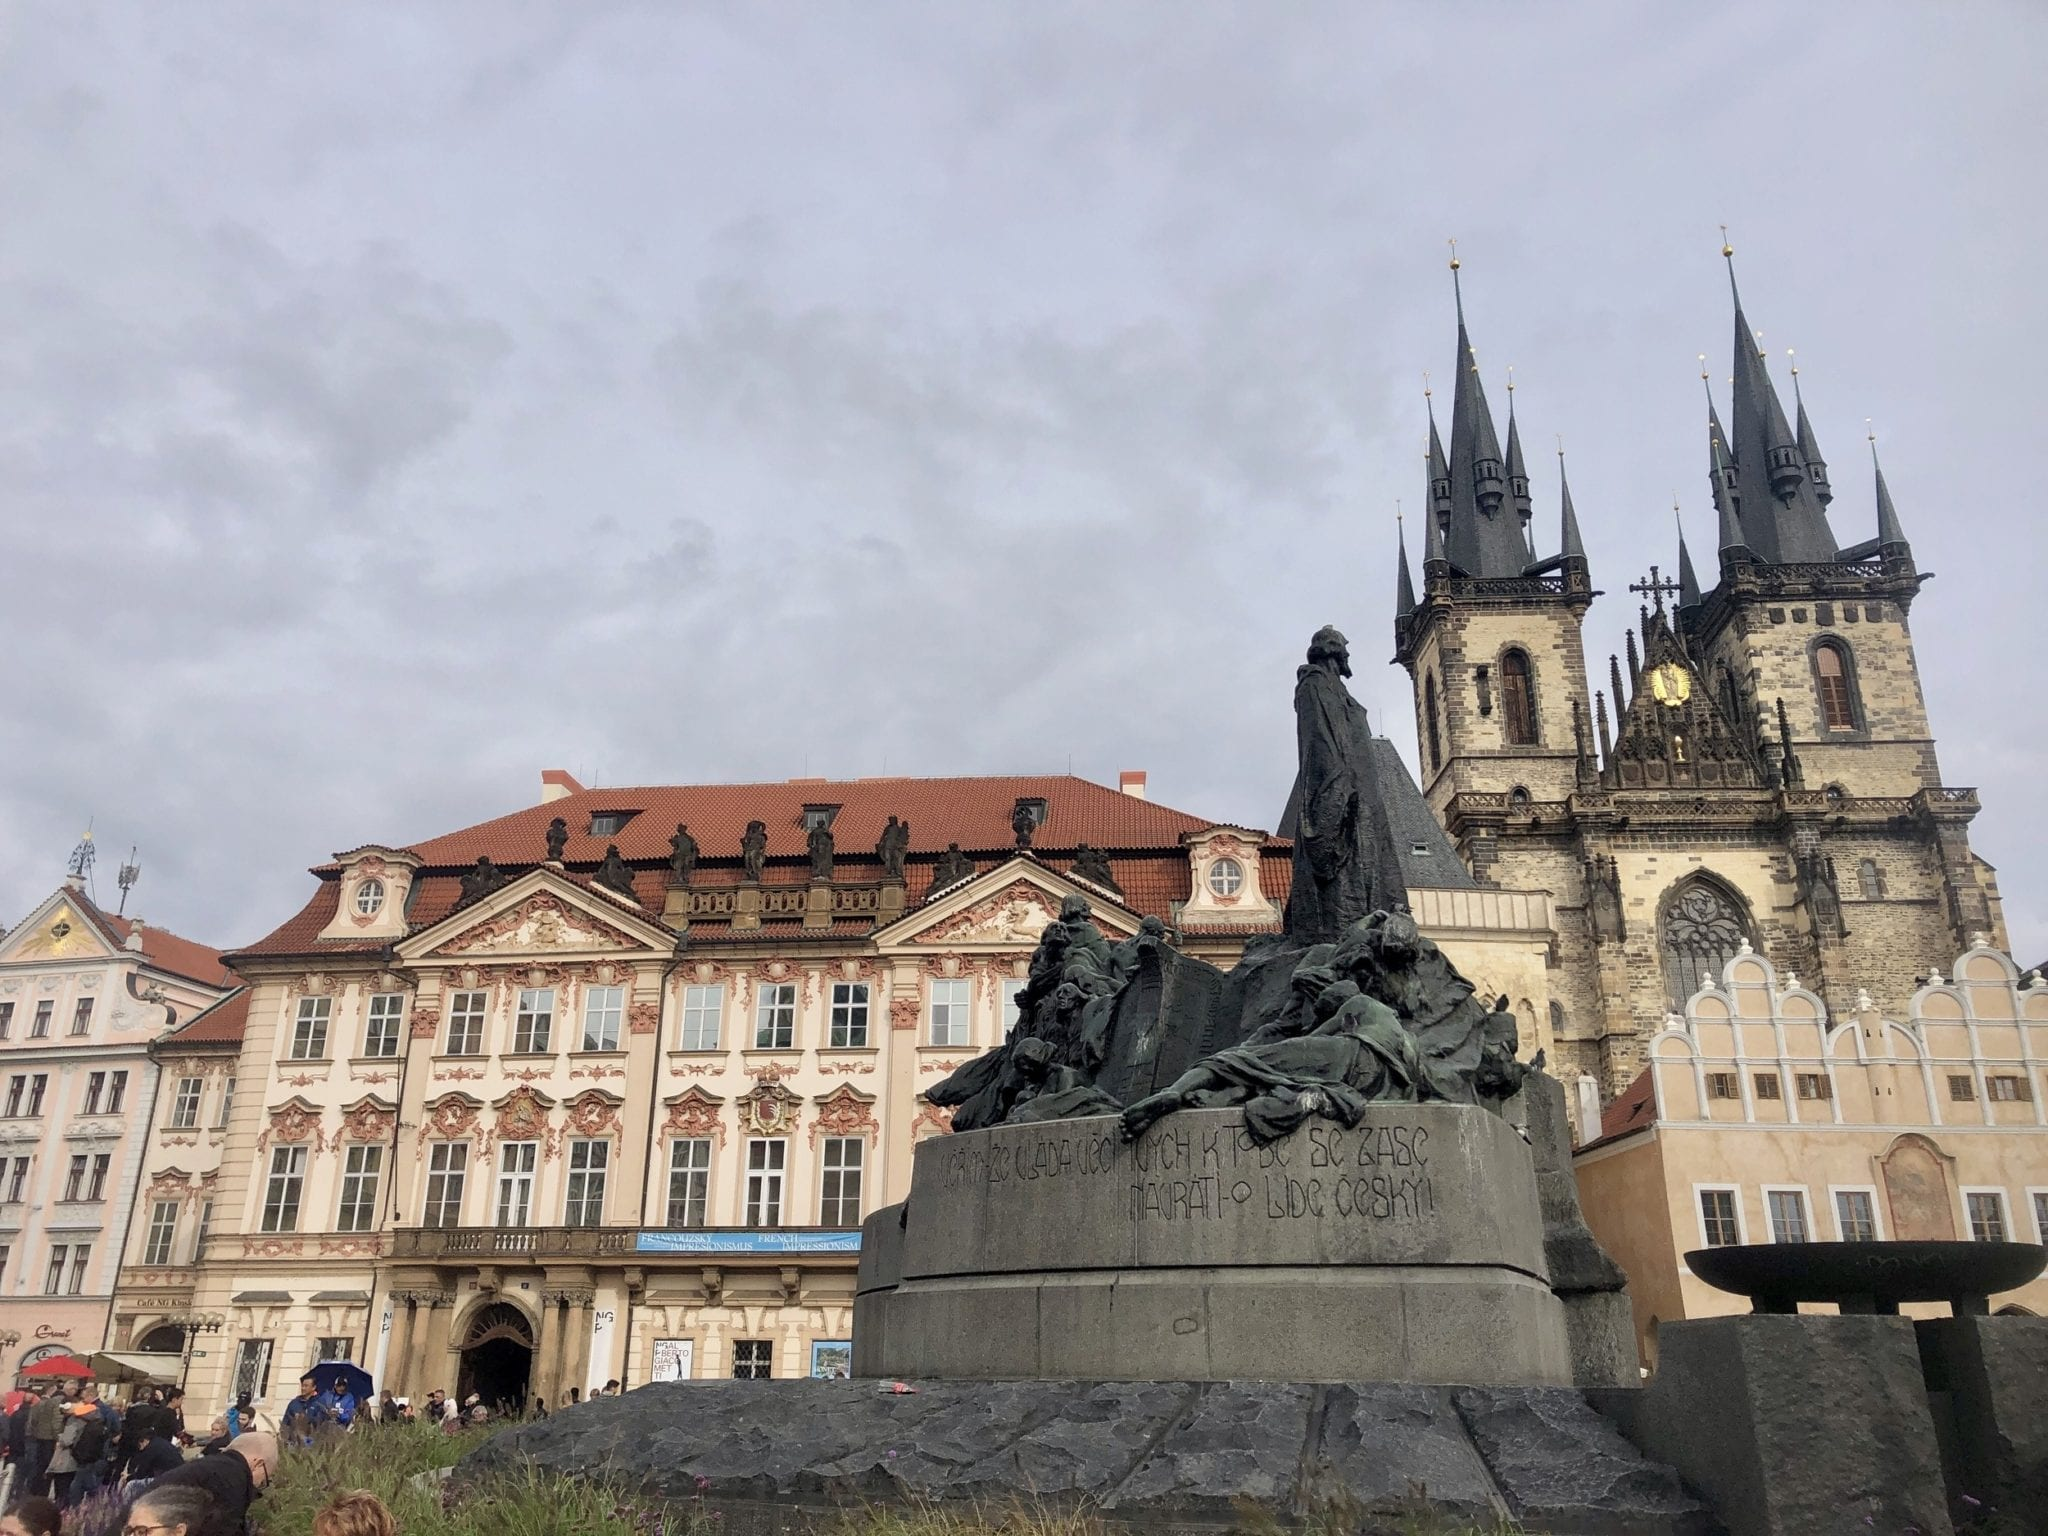 A scene from Old Town Square in Prague: a statue of soldiers in front of a cream-colored building with an orange roof and two church towers. Shot from below because THIS SQUARE IS FULL OF THOUSANDS OF TOURISTS.